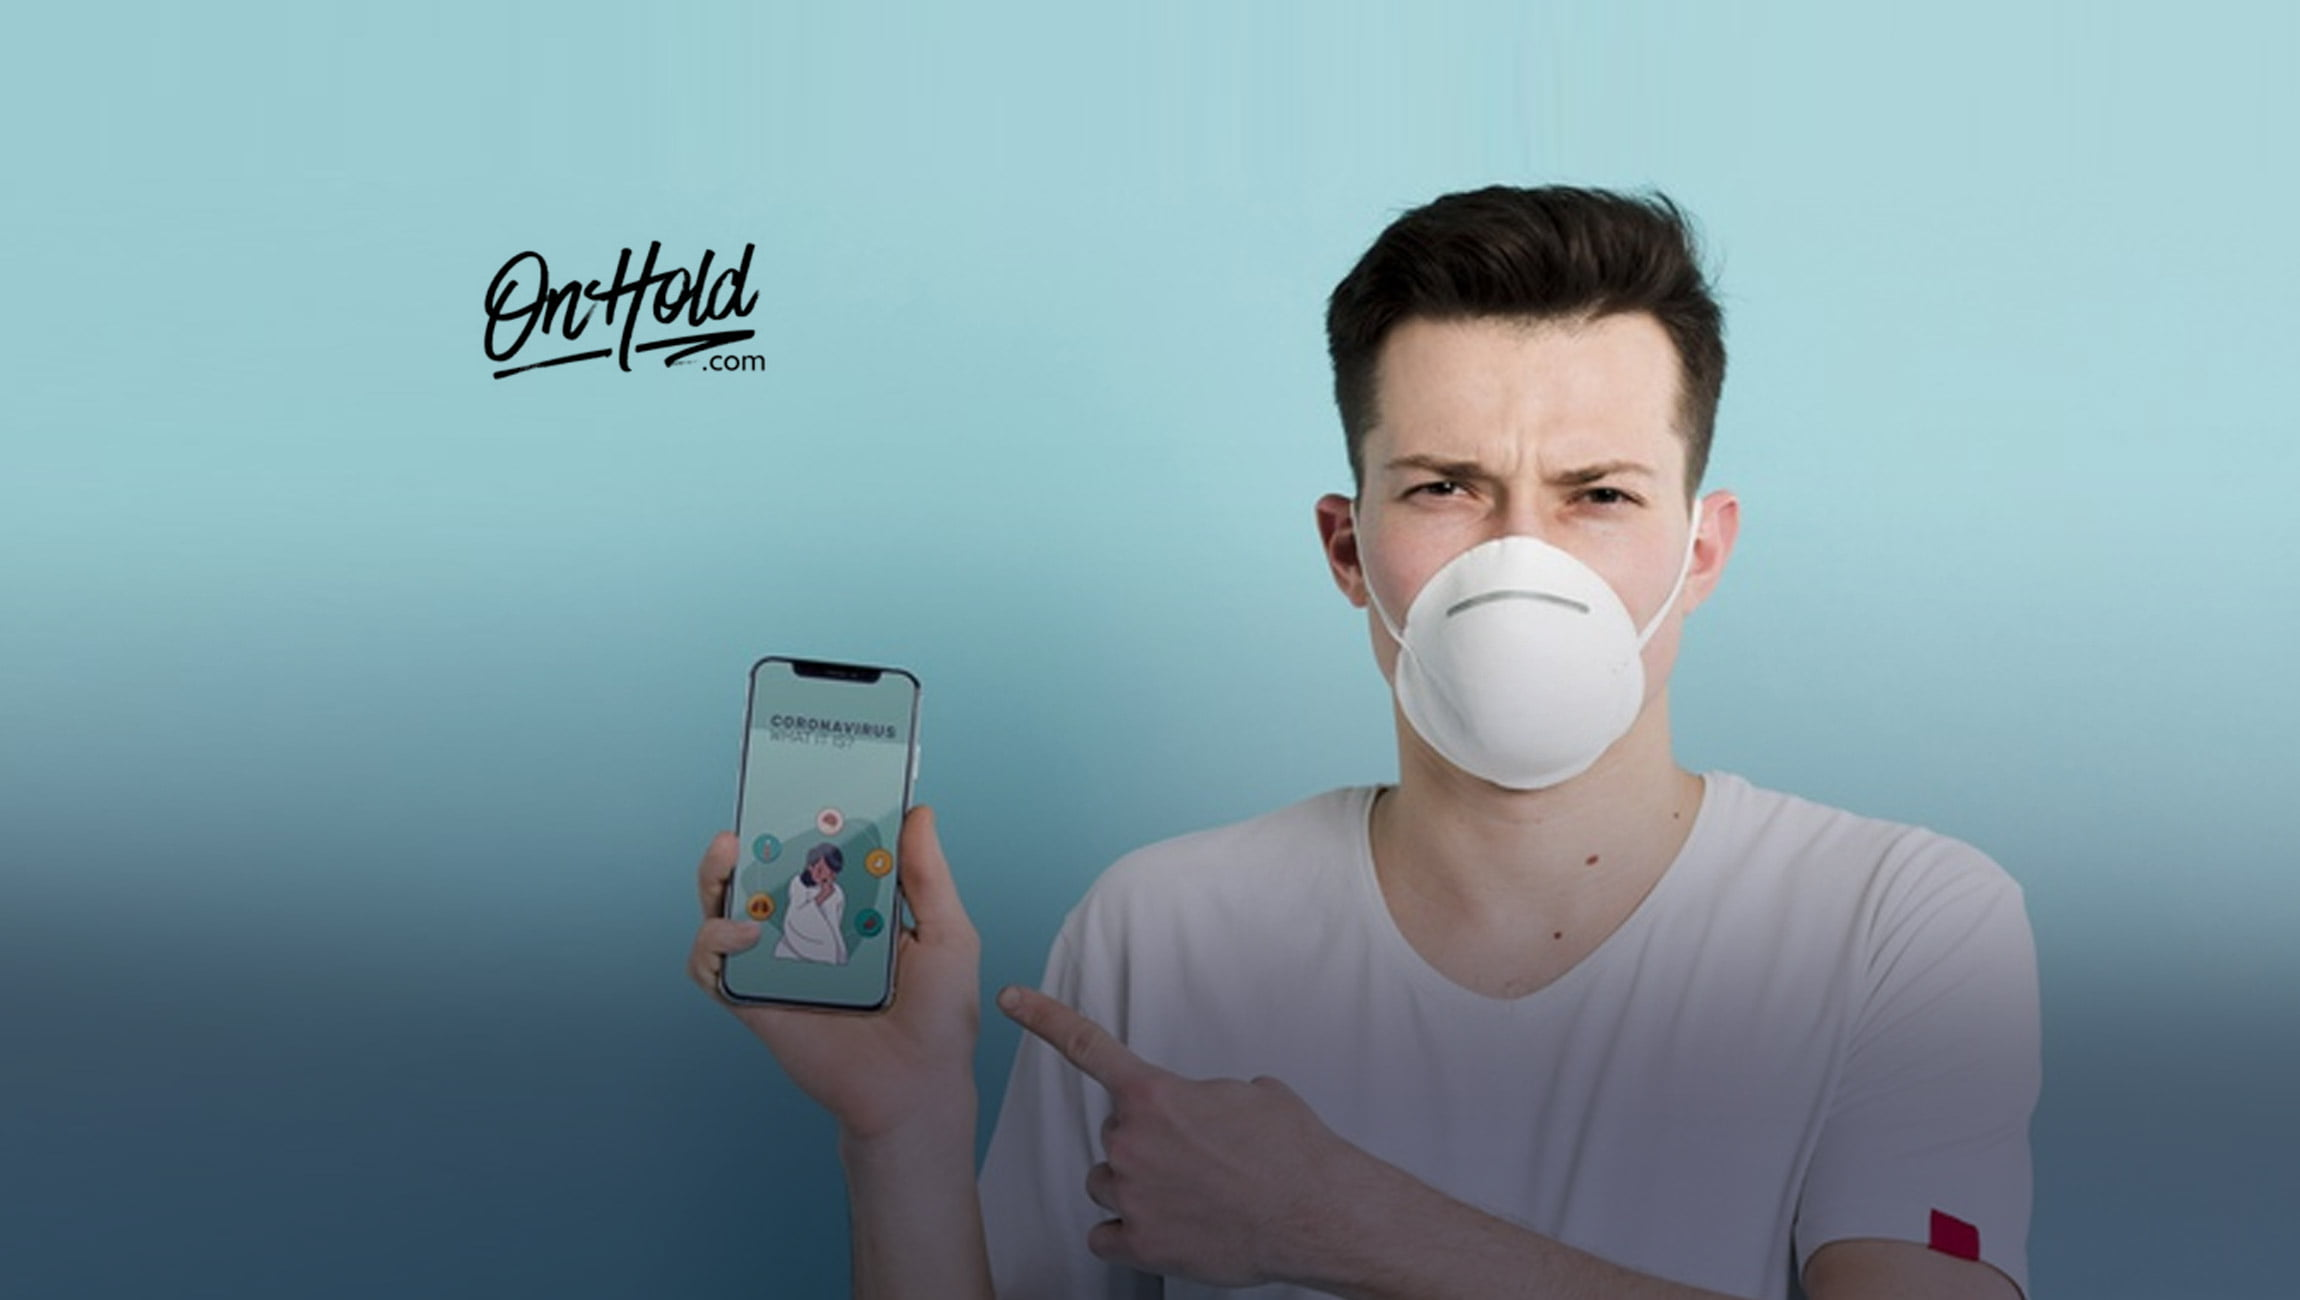 Public Health Emergency On-Hold Messaging Offered for Free to Overwhelmed Businesses by onhold.com